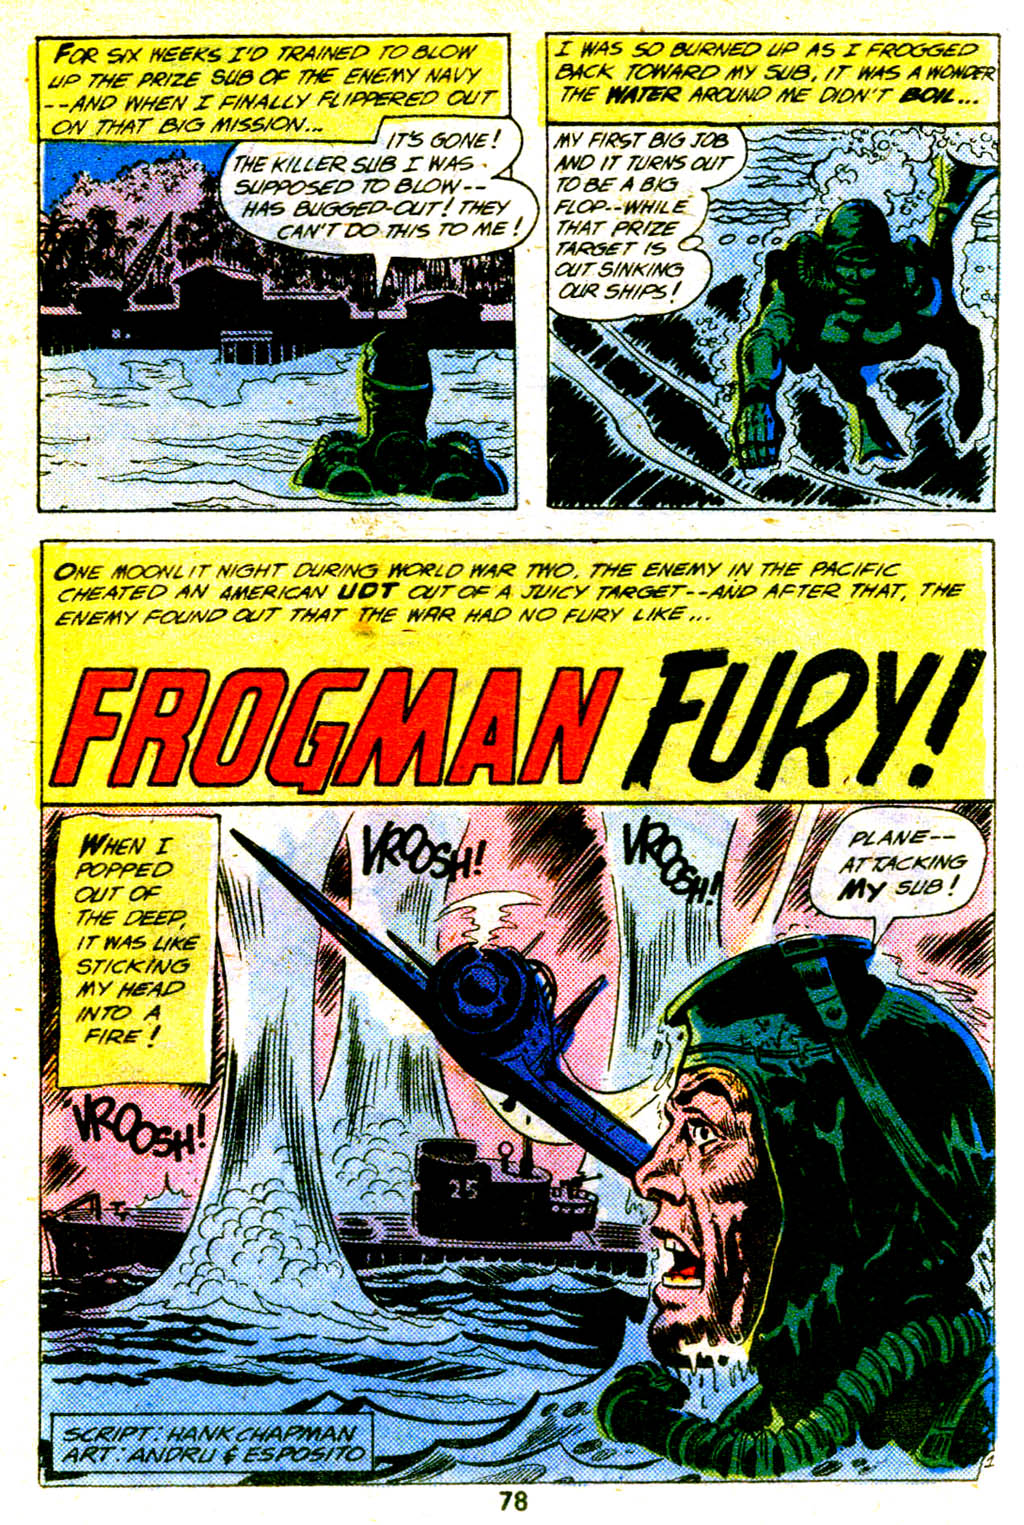 """Frogman Fury"" by Hank P. Chapman, Ross Andru, and Mike Esposito"